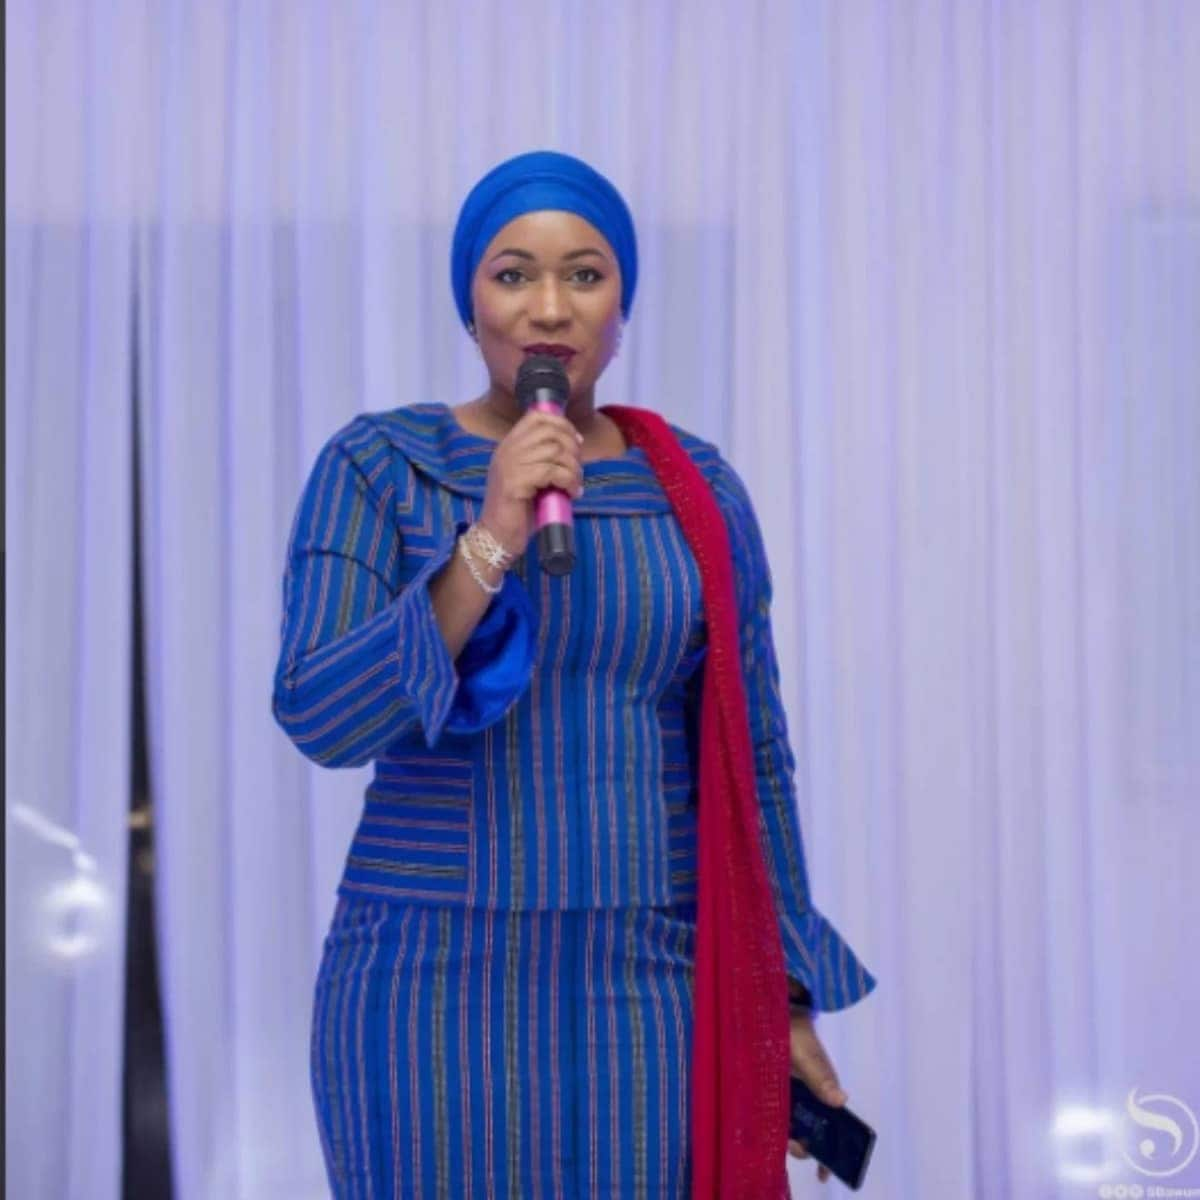 Samira Bawumia 'slays' in African-inspired clothing as she is conferred with UN top position